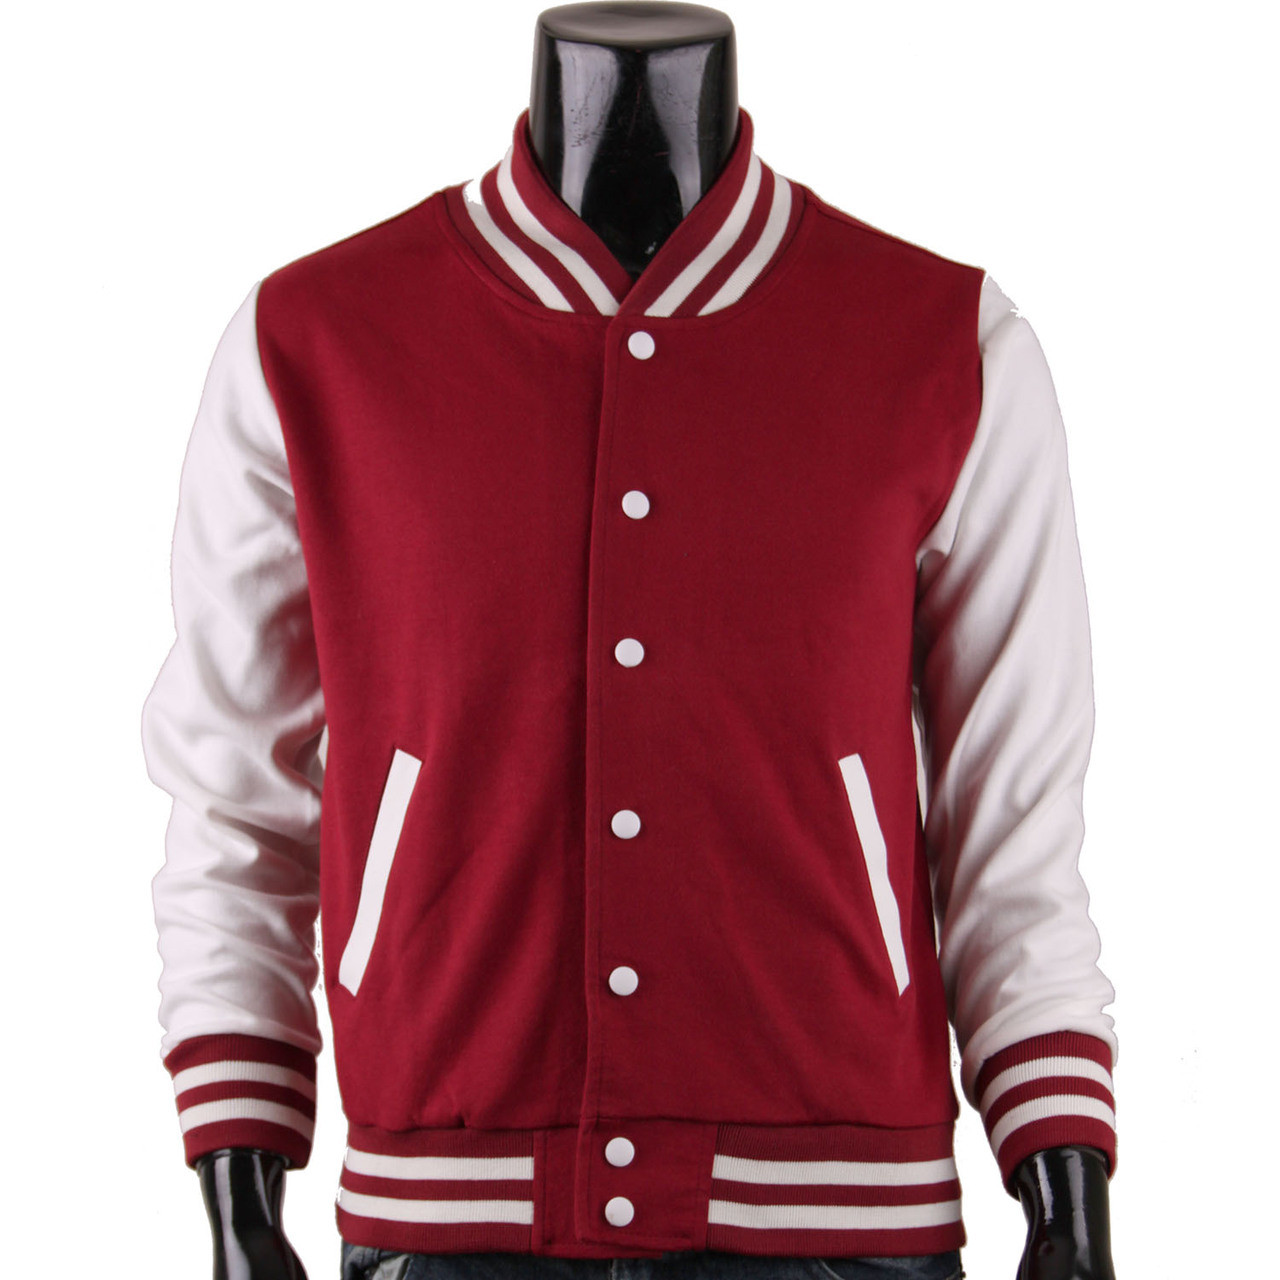 Men's Brown Baseball Jacket Varsity Jacket Letterman Jacket